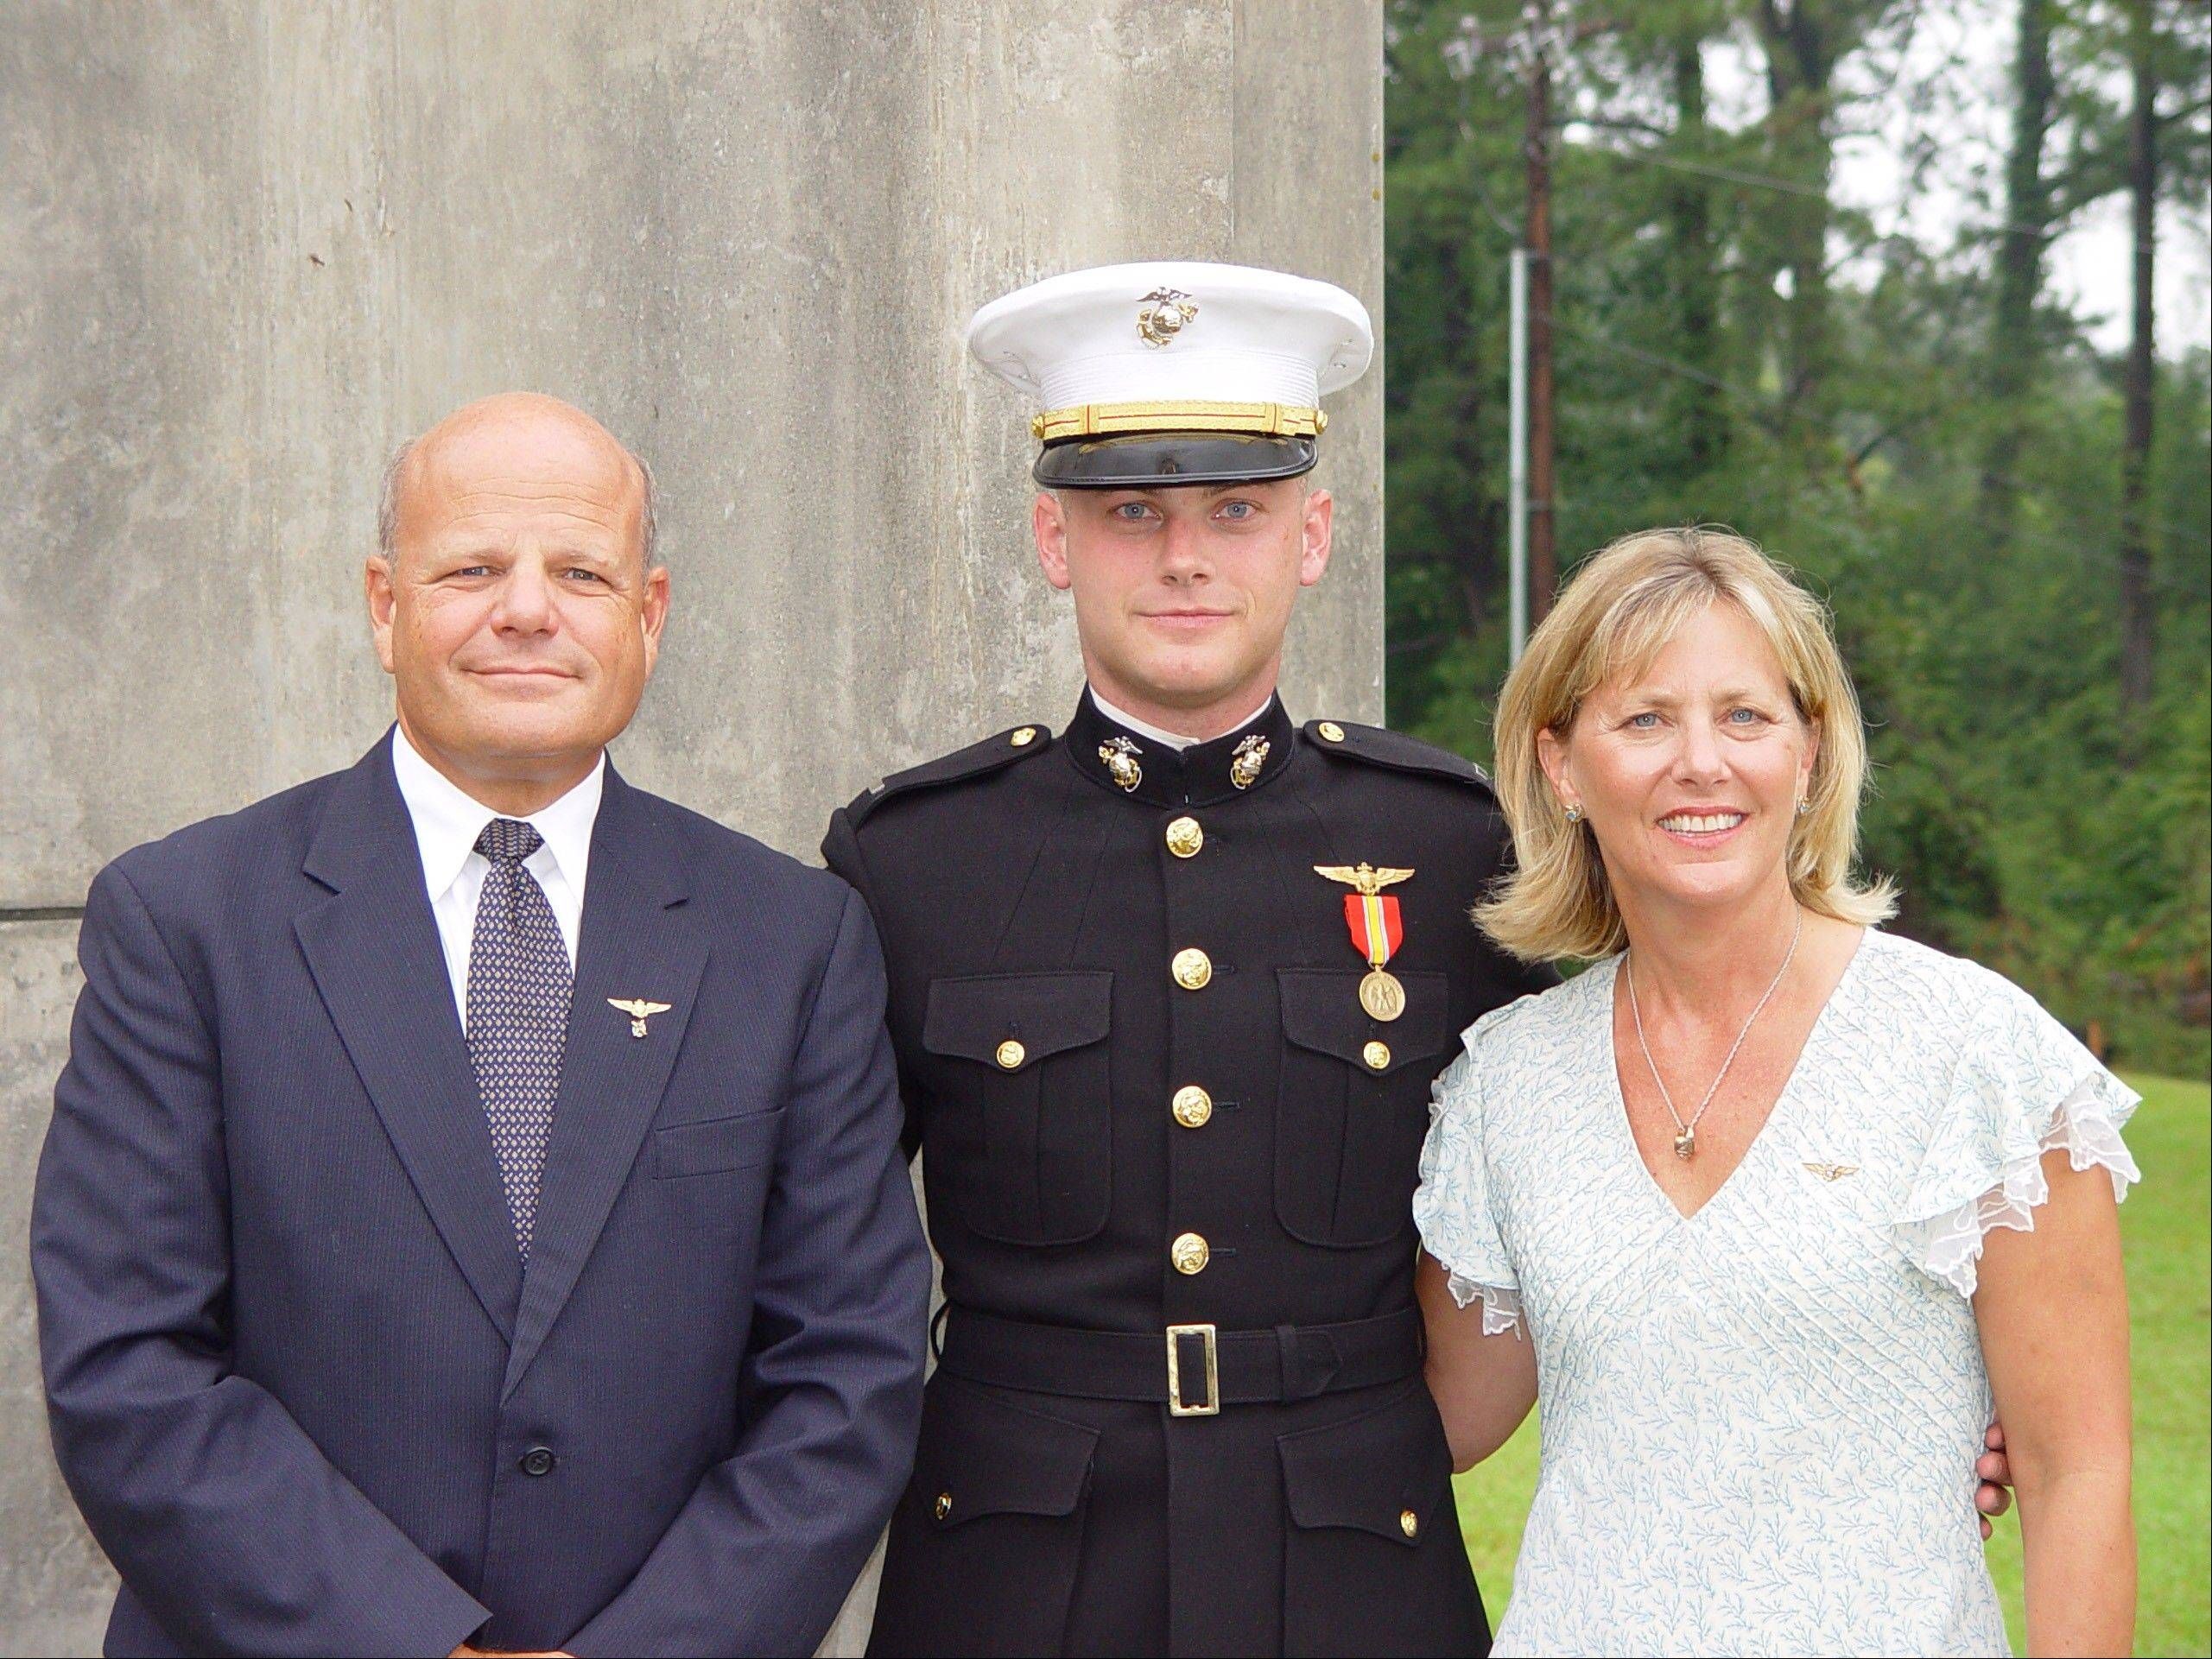 Lisa Freeman and her husband, Gary, and her son, Matthew, and in Meridian, Miss. where Matthew finished his jet training. Matthew Freeman excelled at everything he set his mind to. Eagle Scout, honor roll, student council president. So no one was surprised when he won an appointment to the U.S. Naval Academy, following in his father's footsteps.